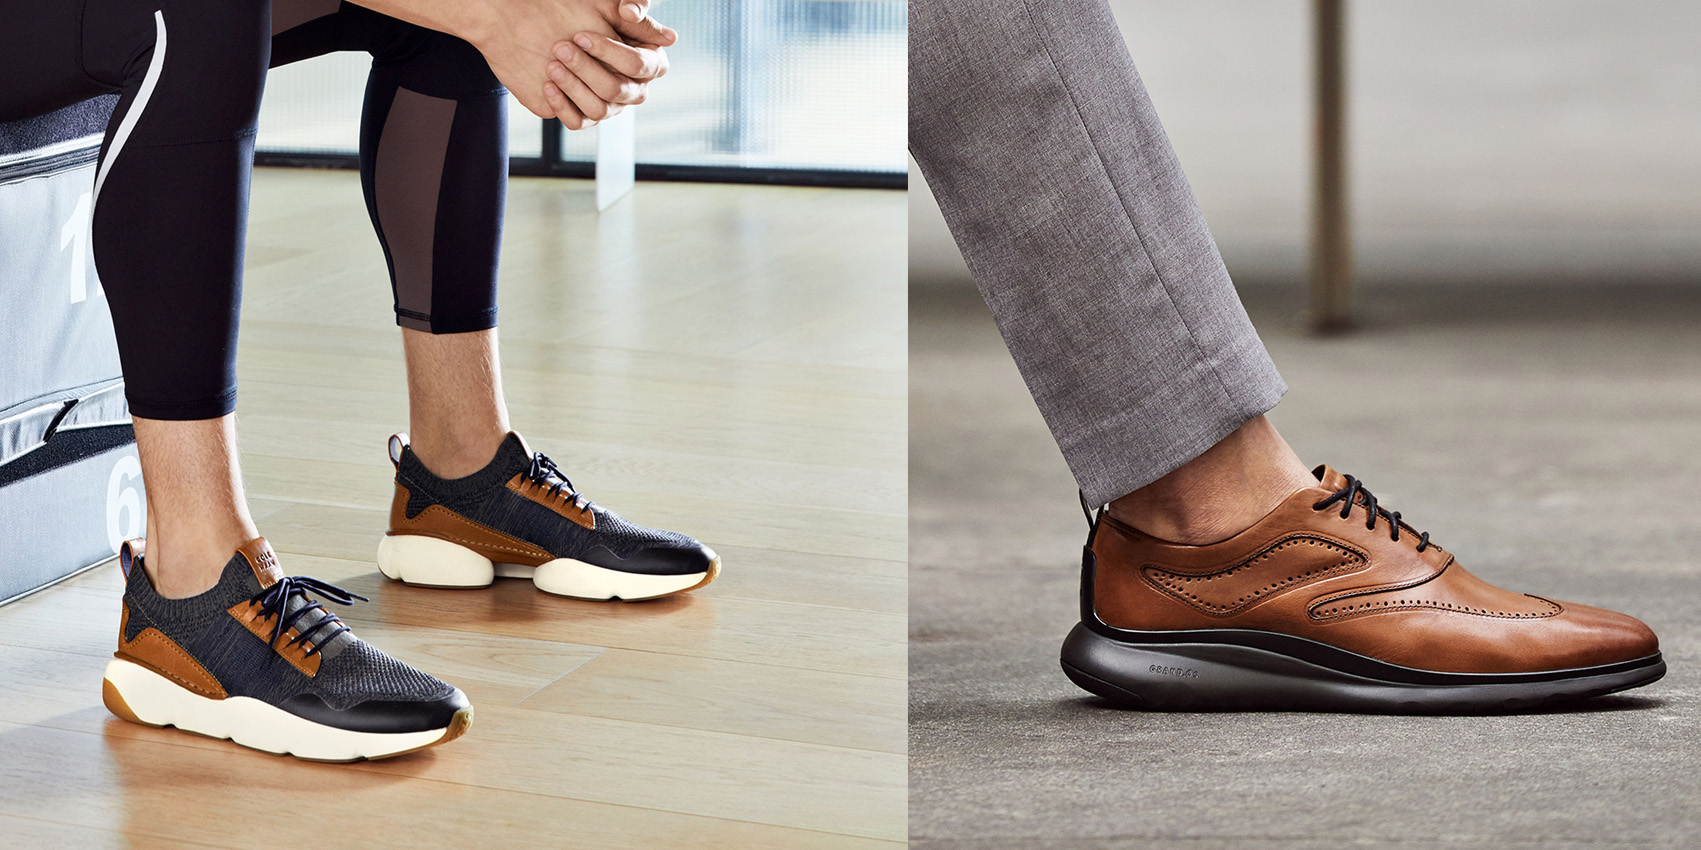 Cole Haan's new markdowns for summer offer up to 70% off +